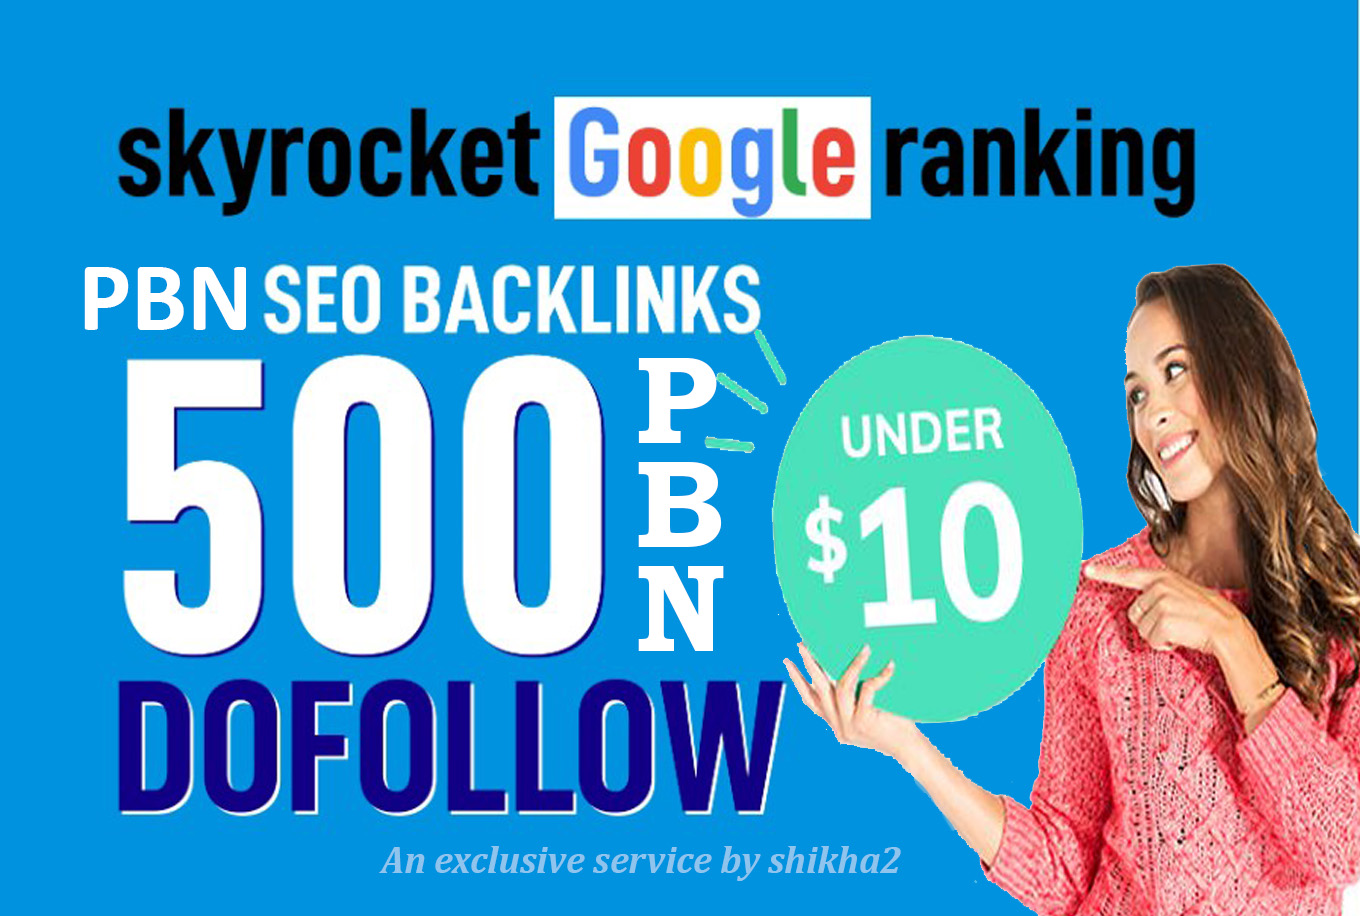 Create 500 Super Web 2.0 Blogs post baclinks With Login details